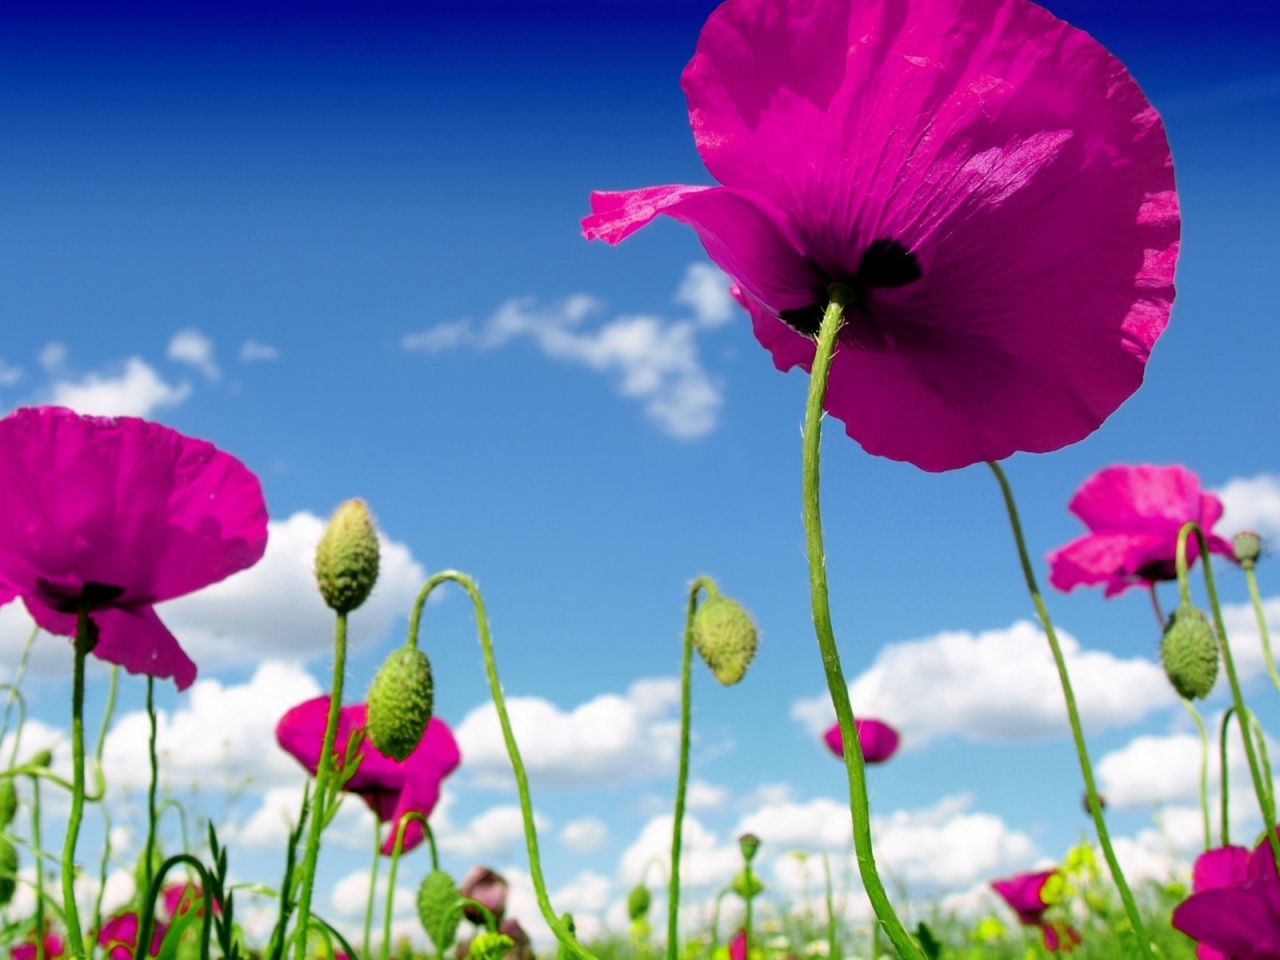 Pink Poppies for 1280 x 960 resolution